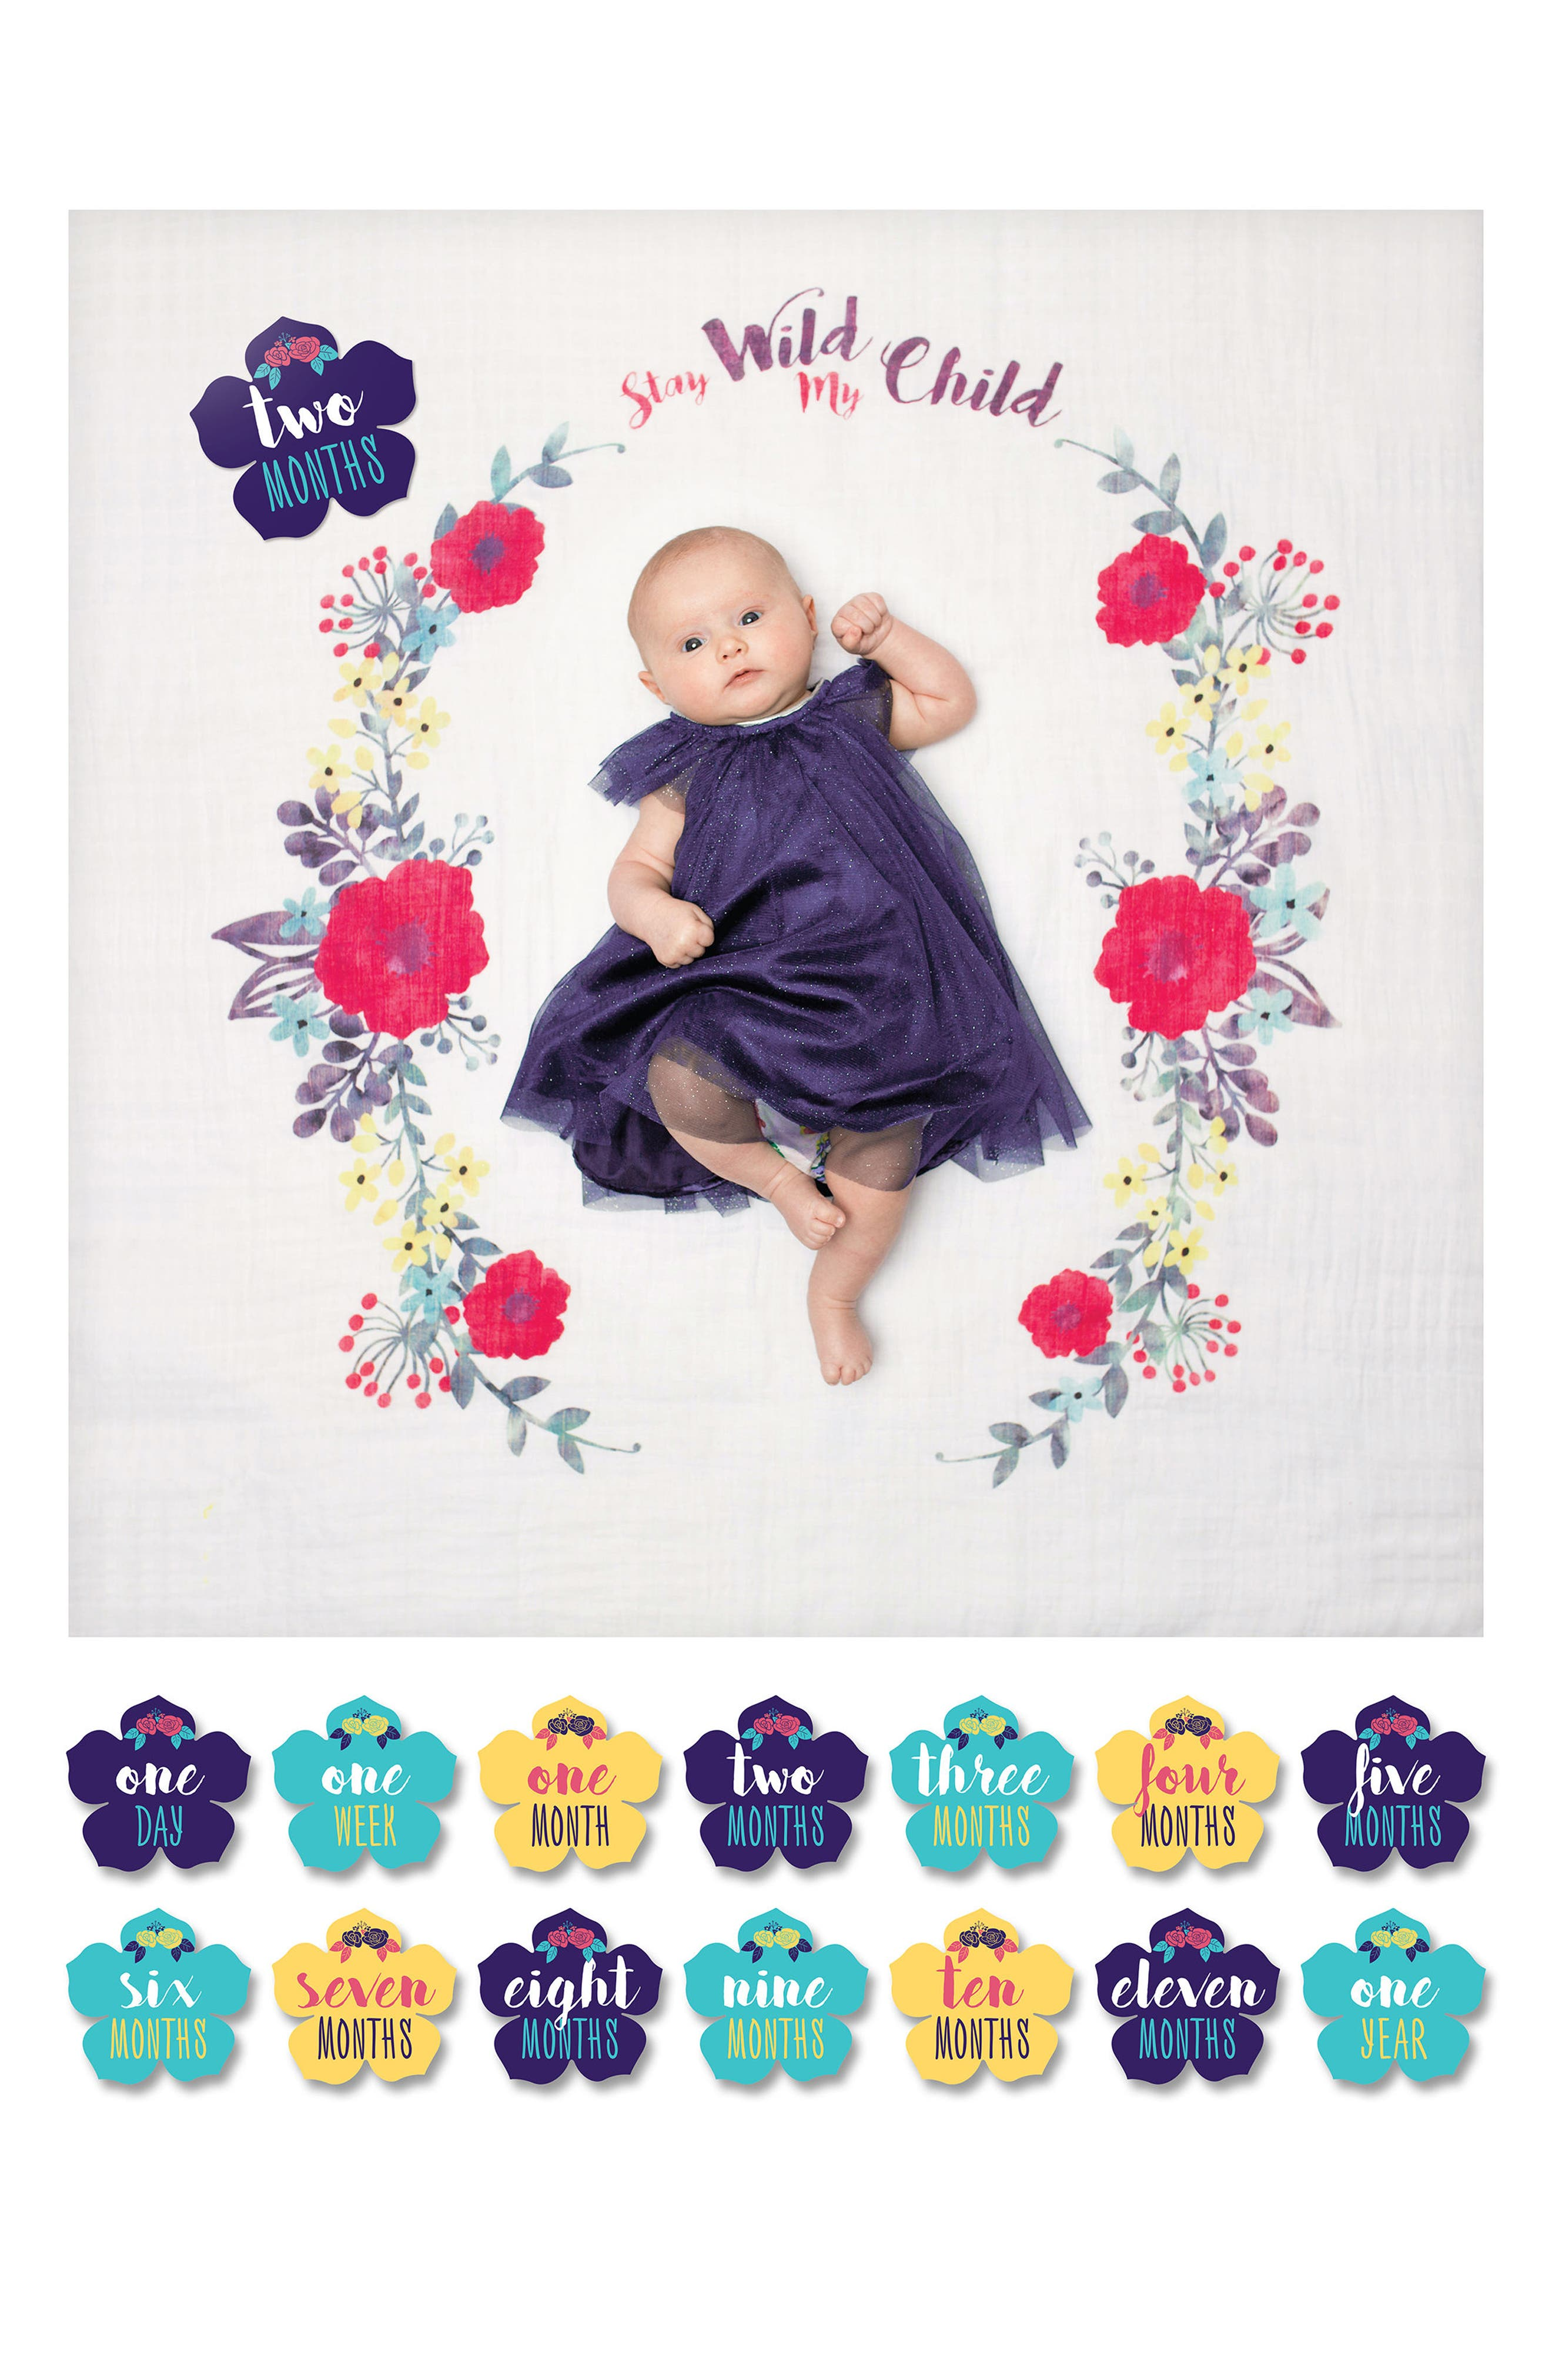 Baby's First Year - Stay Wild My Child Muslin Blanket & Milestone Card Set,                             Alternate thumbnail 2, color,                             Wild My Child